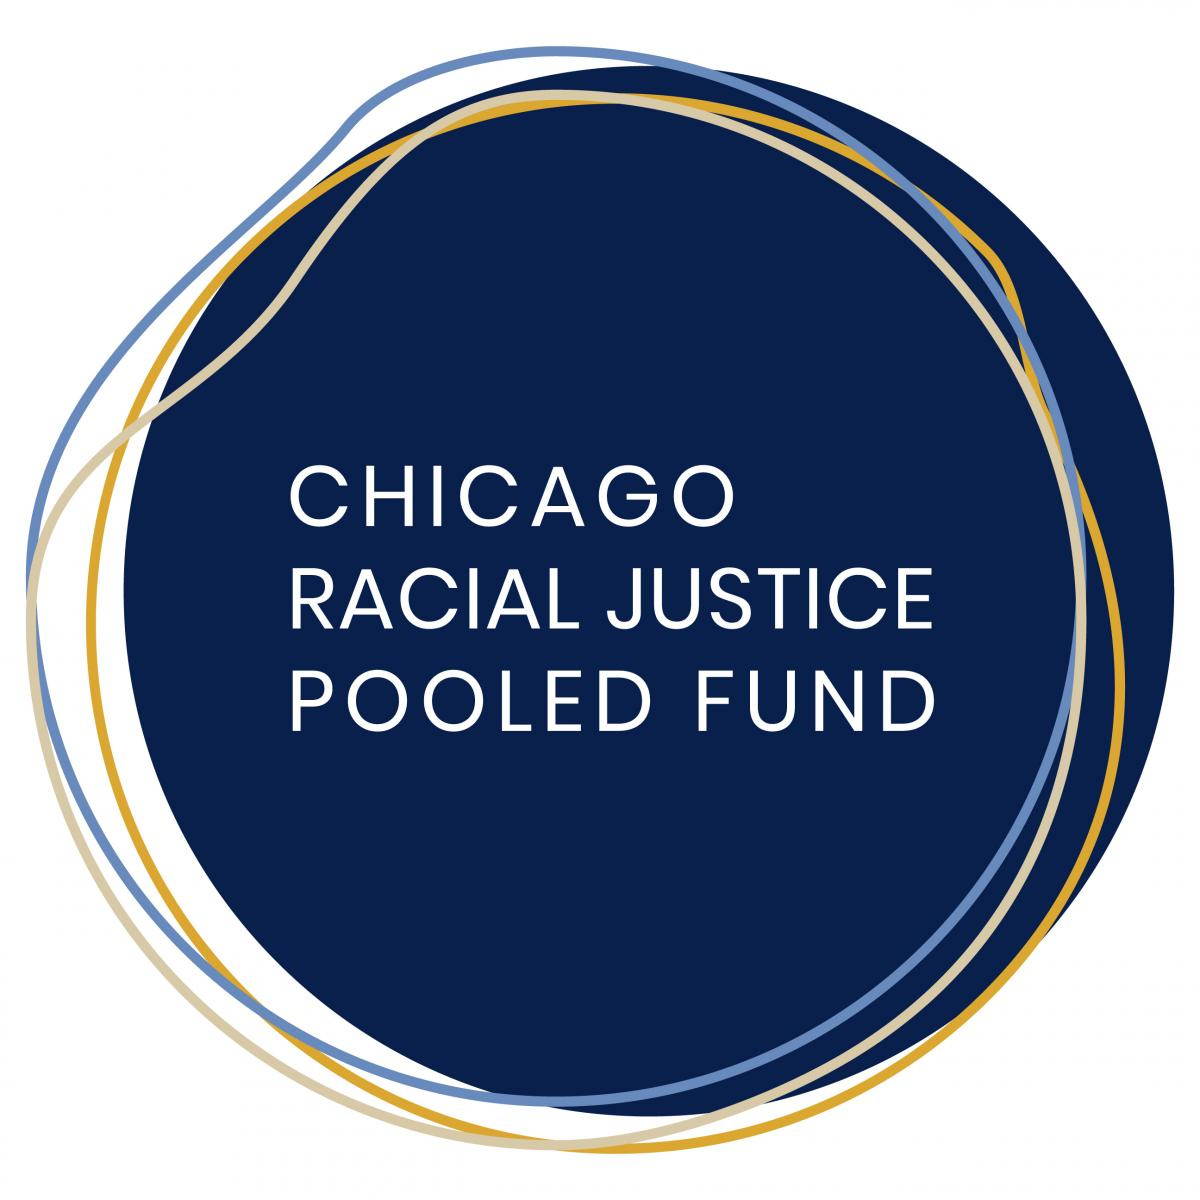 Chicago Racial Justice Pooled Fund Crossroads Fund